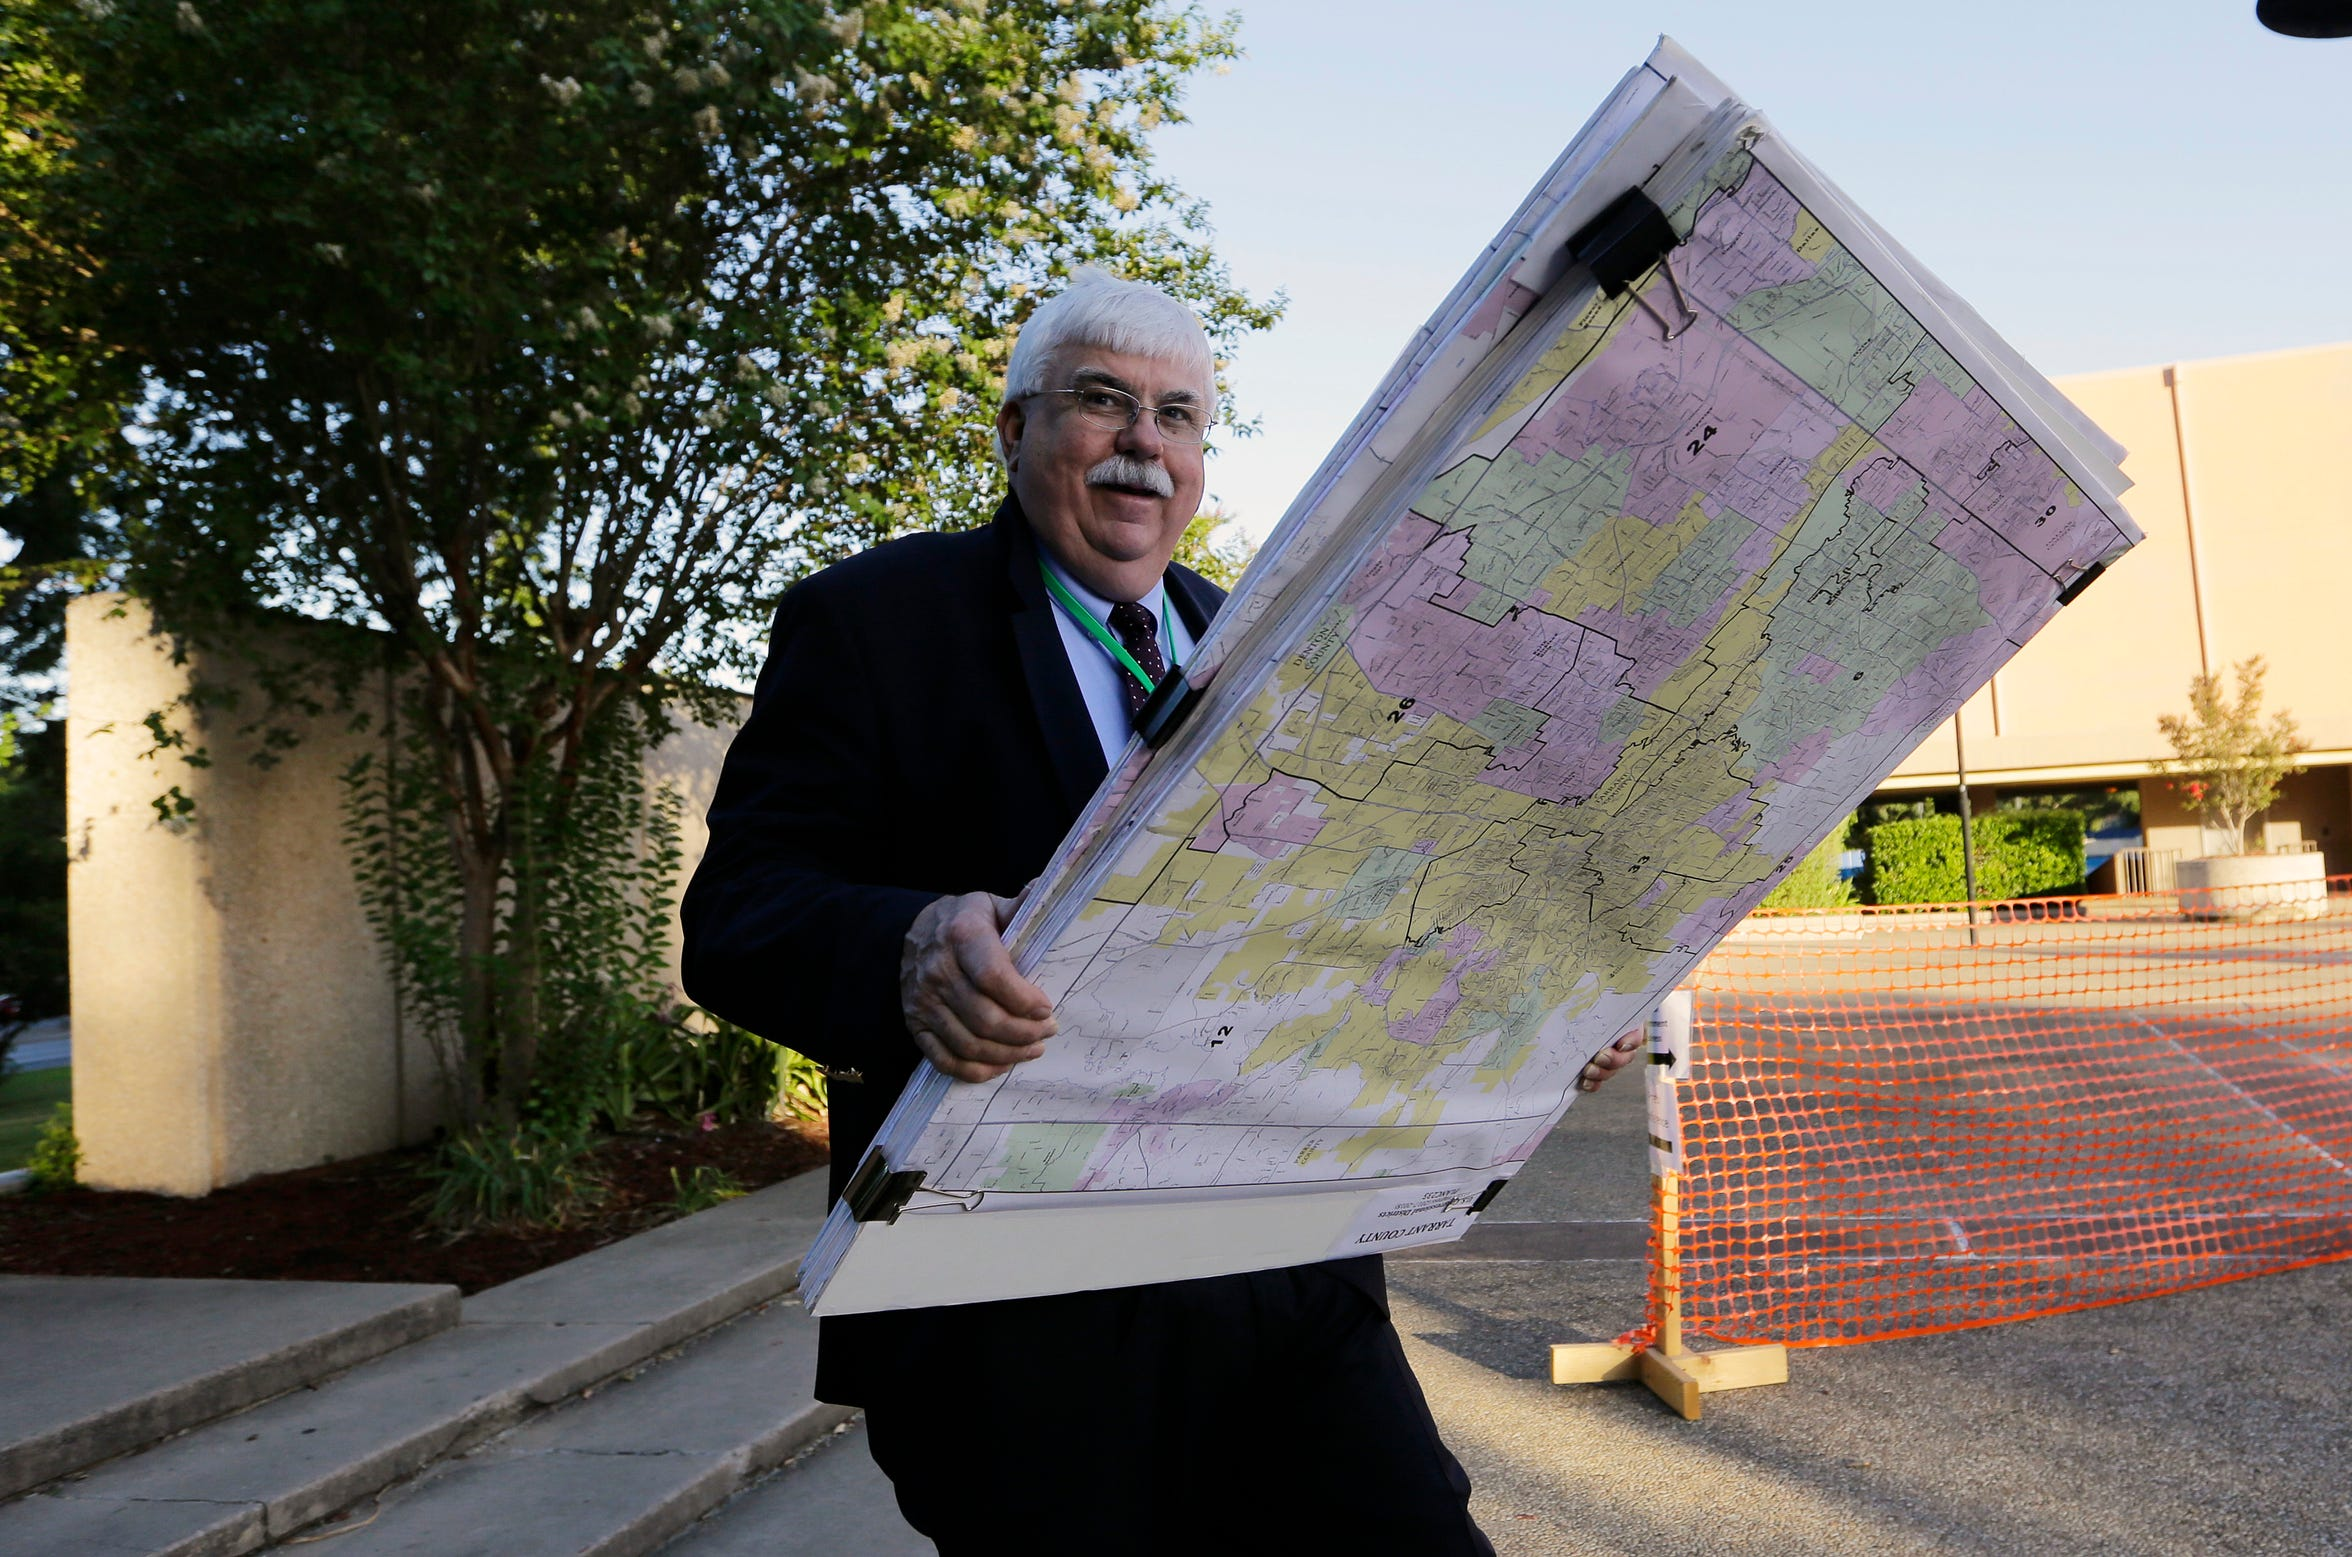 Russ Tidwell, a former lobbyist who is helping minority rights groups sue Texas over Republican-drawn voting maps, holds a set of maps as he makes his way to the federal courthouse, Monday, July 10, 2017, in San Antonio, where a redistricting trial was held.